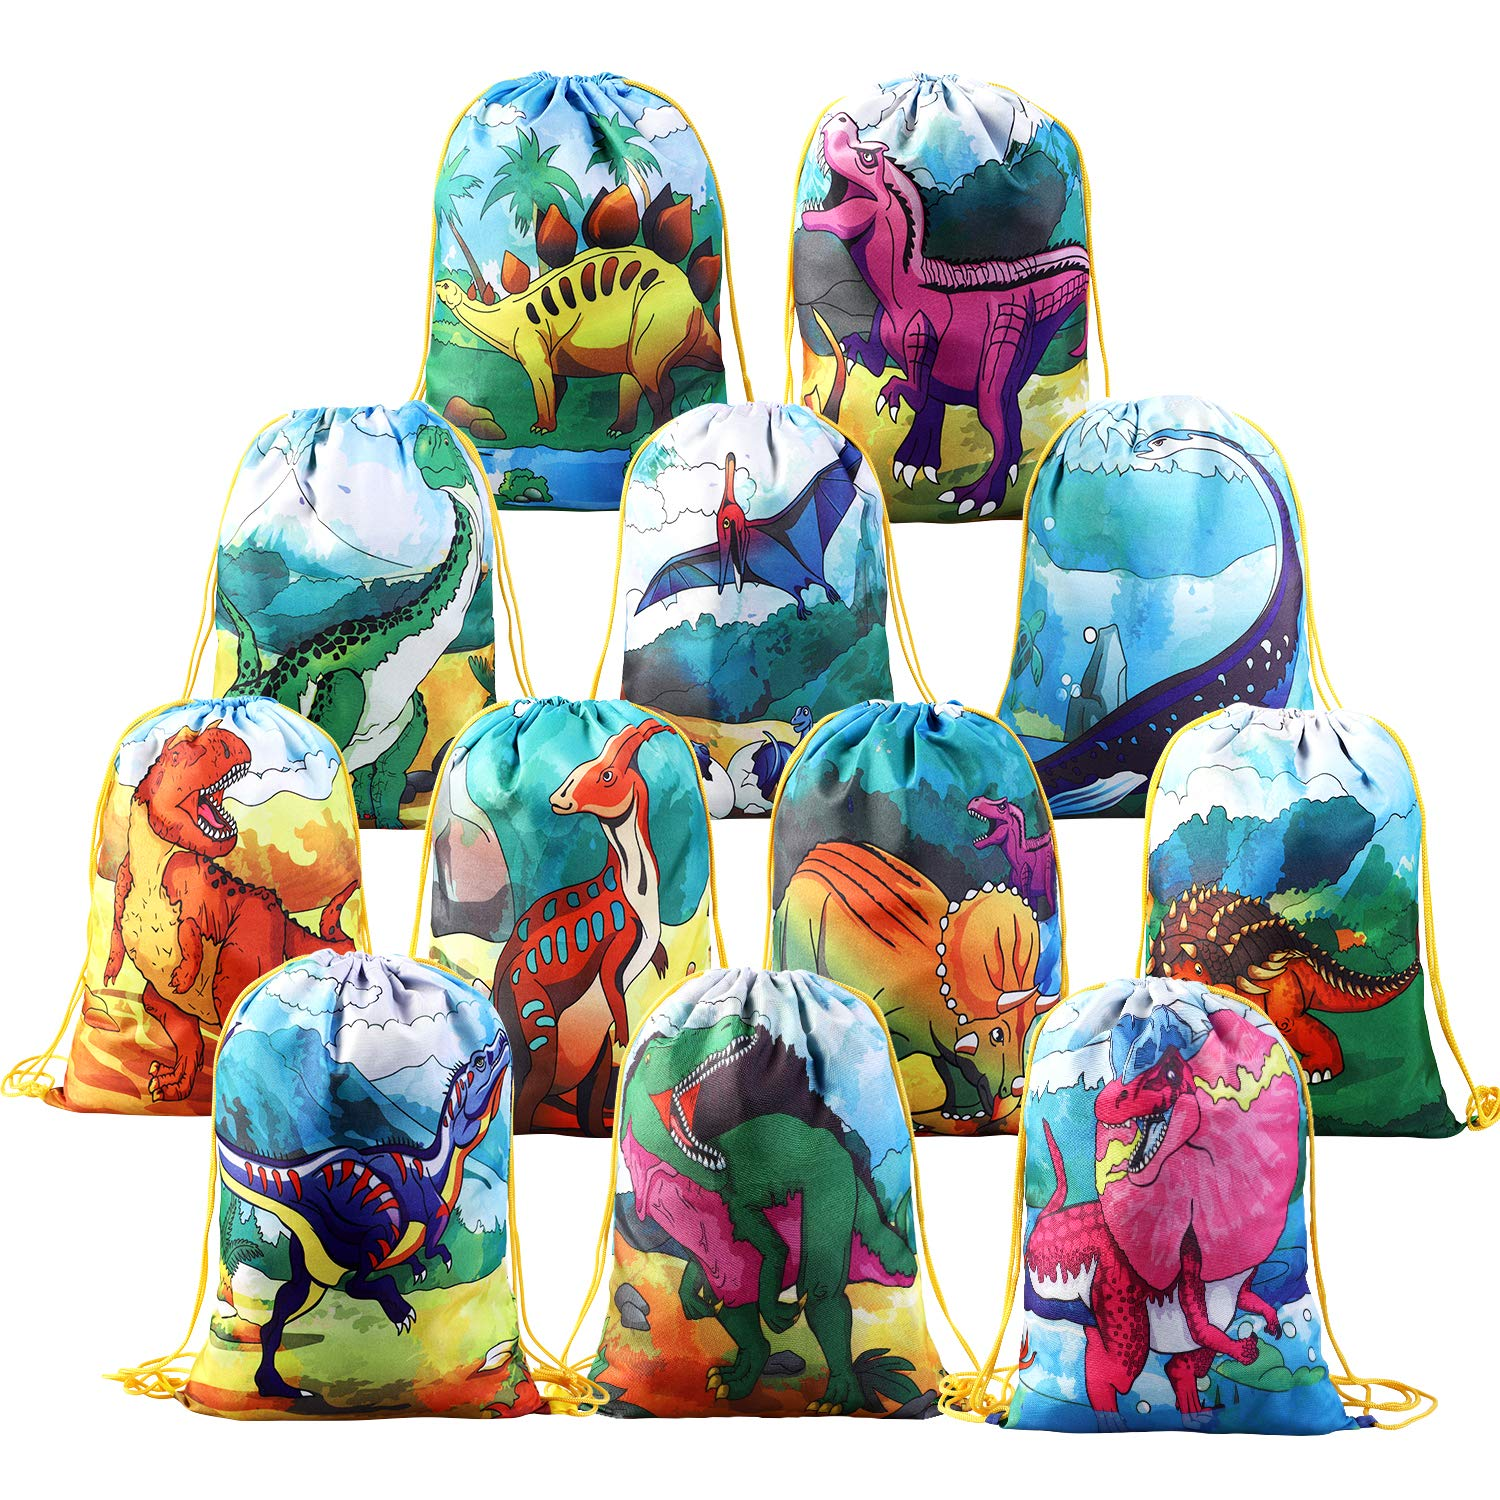 BeebeeRun 12 PCS Kids Dinosaur Party Favor Bags for Birthday Party Gift Package, Animal Drawstring Bag Cartoon Dinosaur Birthday Treat Bags, Dinosaur Goody Bag Gift Pouch for Kids Boys and Girls Party